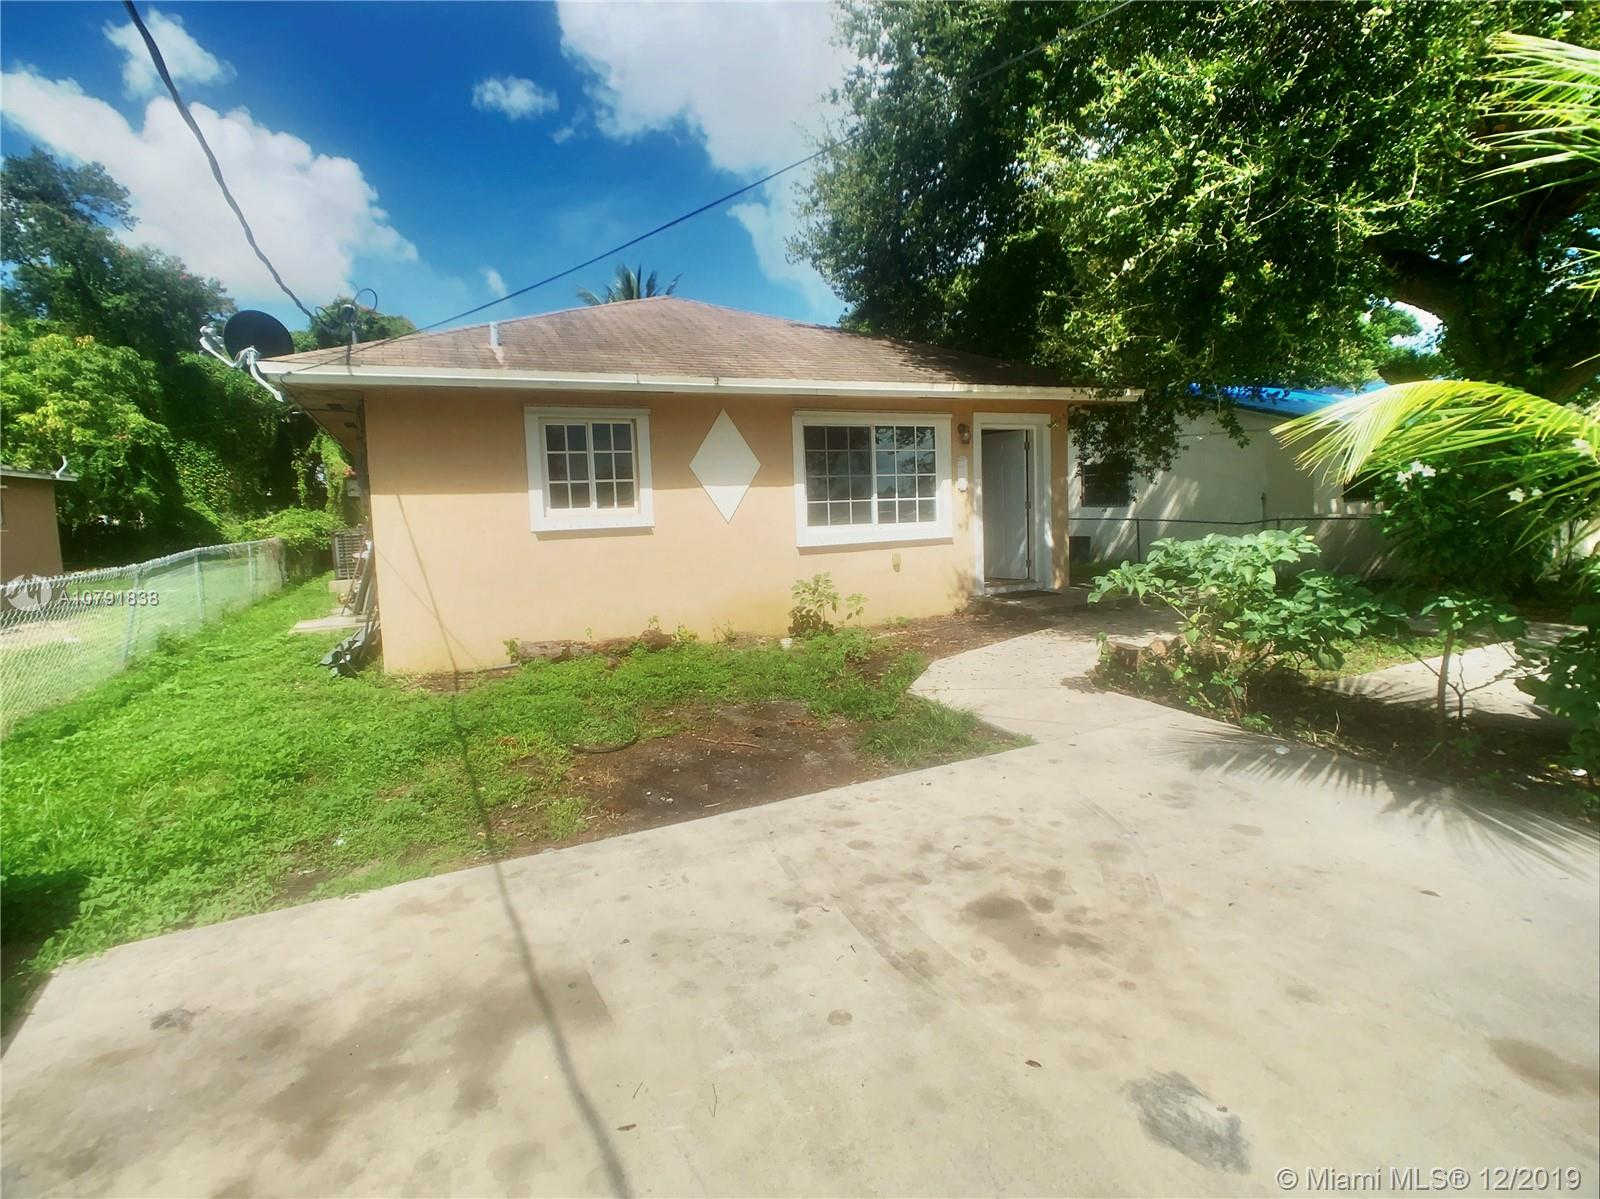 4644 NW 23 #0, Miami, FL 33142 is now new to the market!